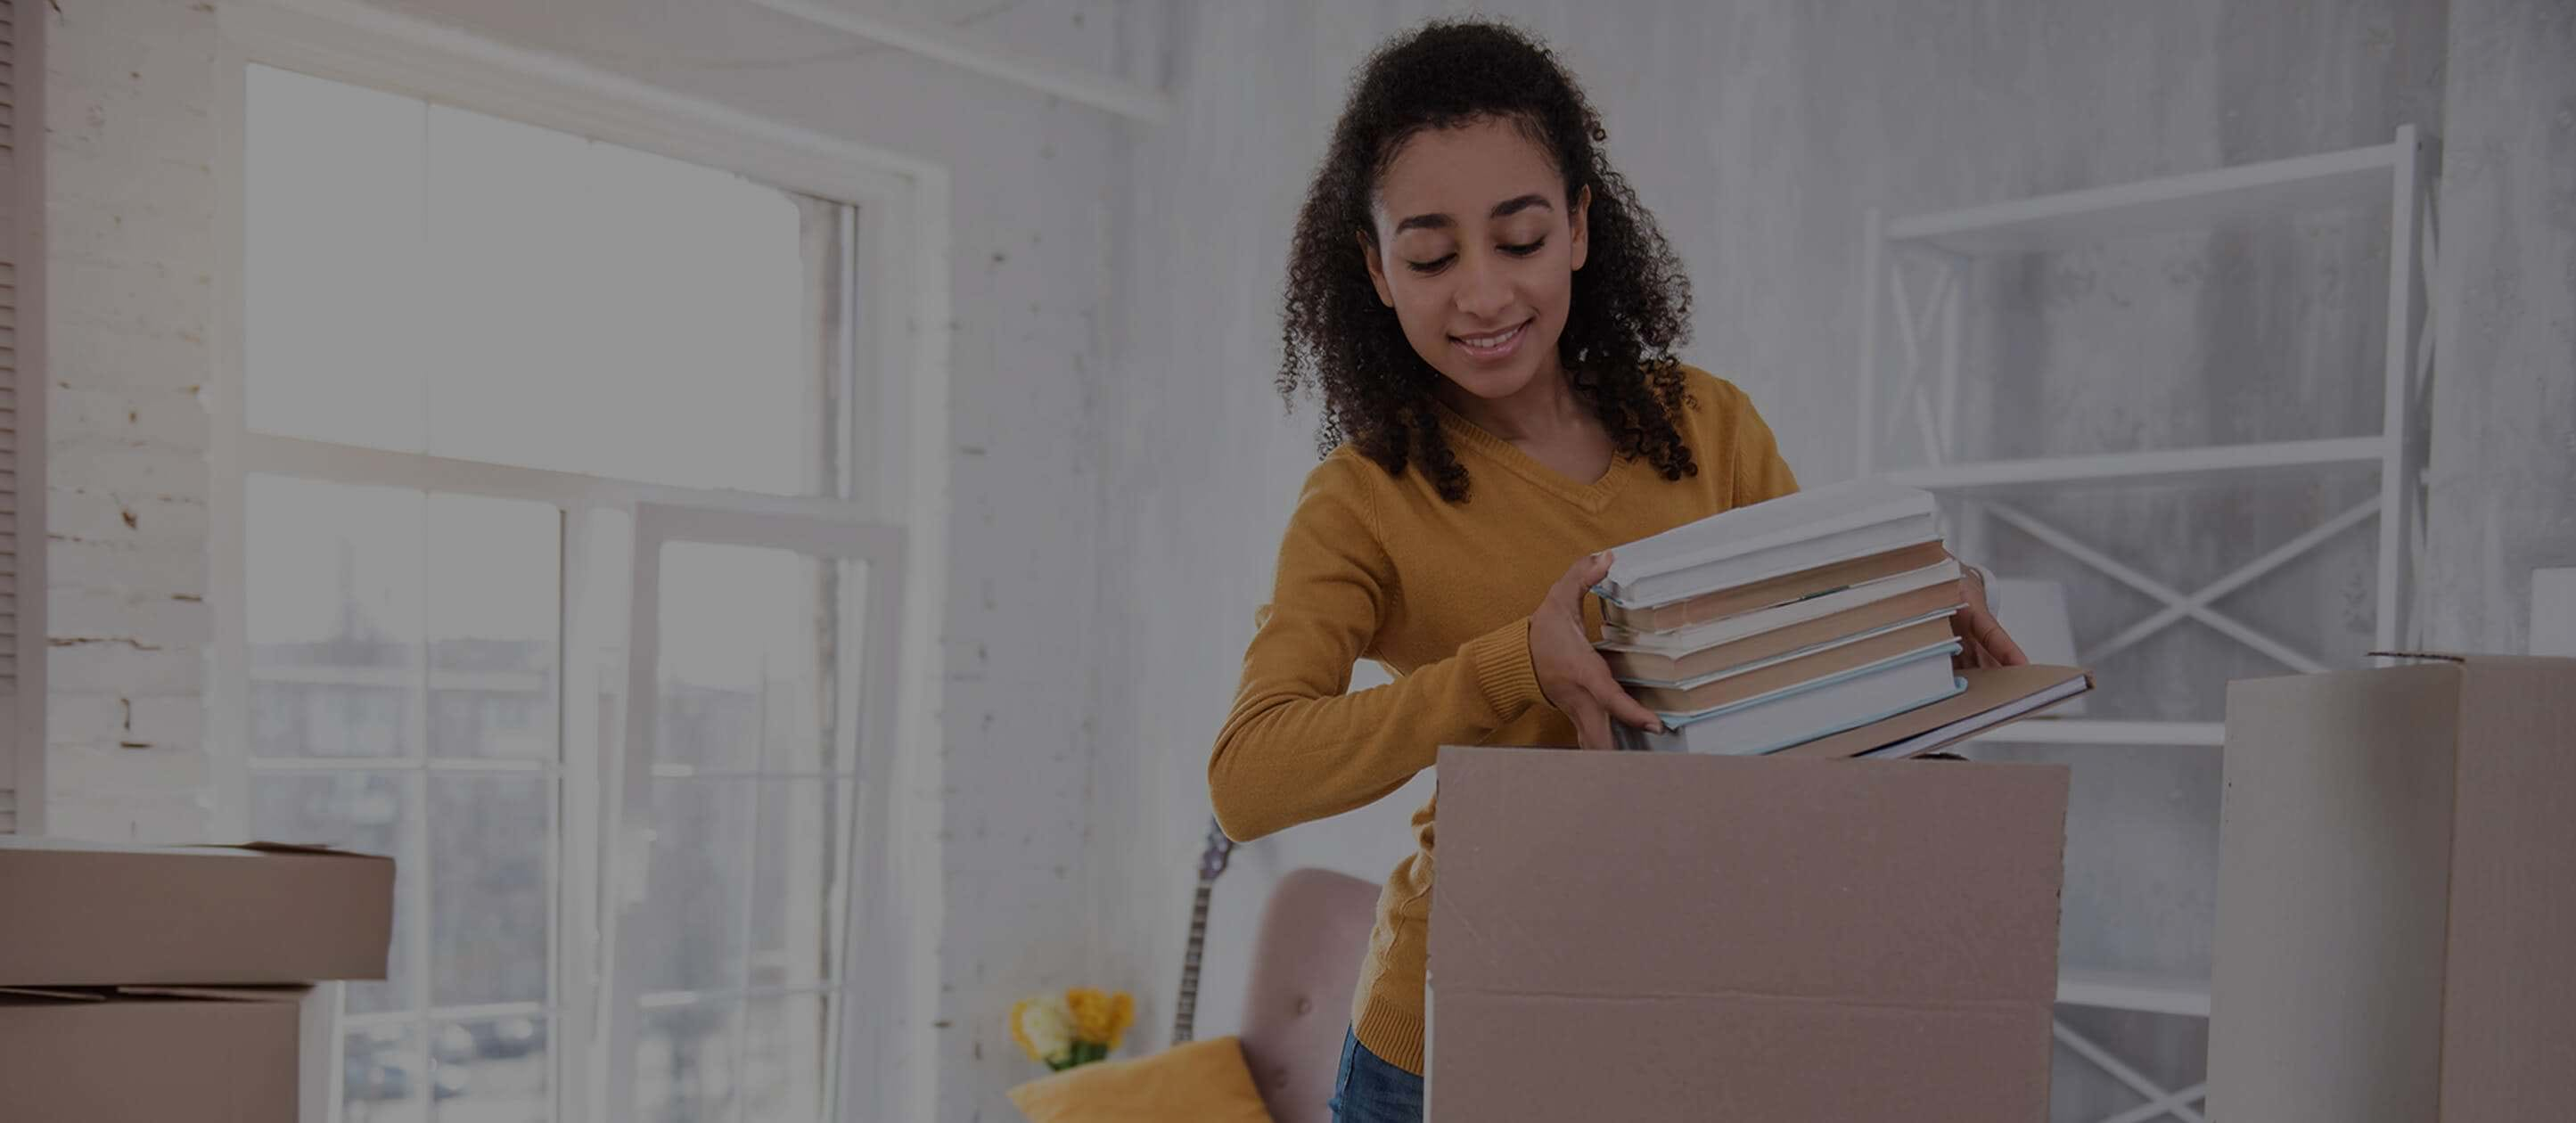 Image of smiling female student putting books into a moving box